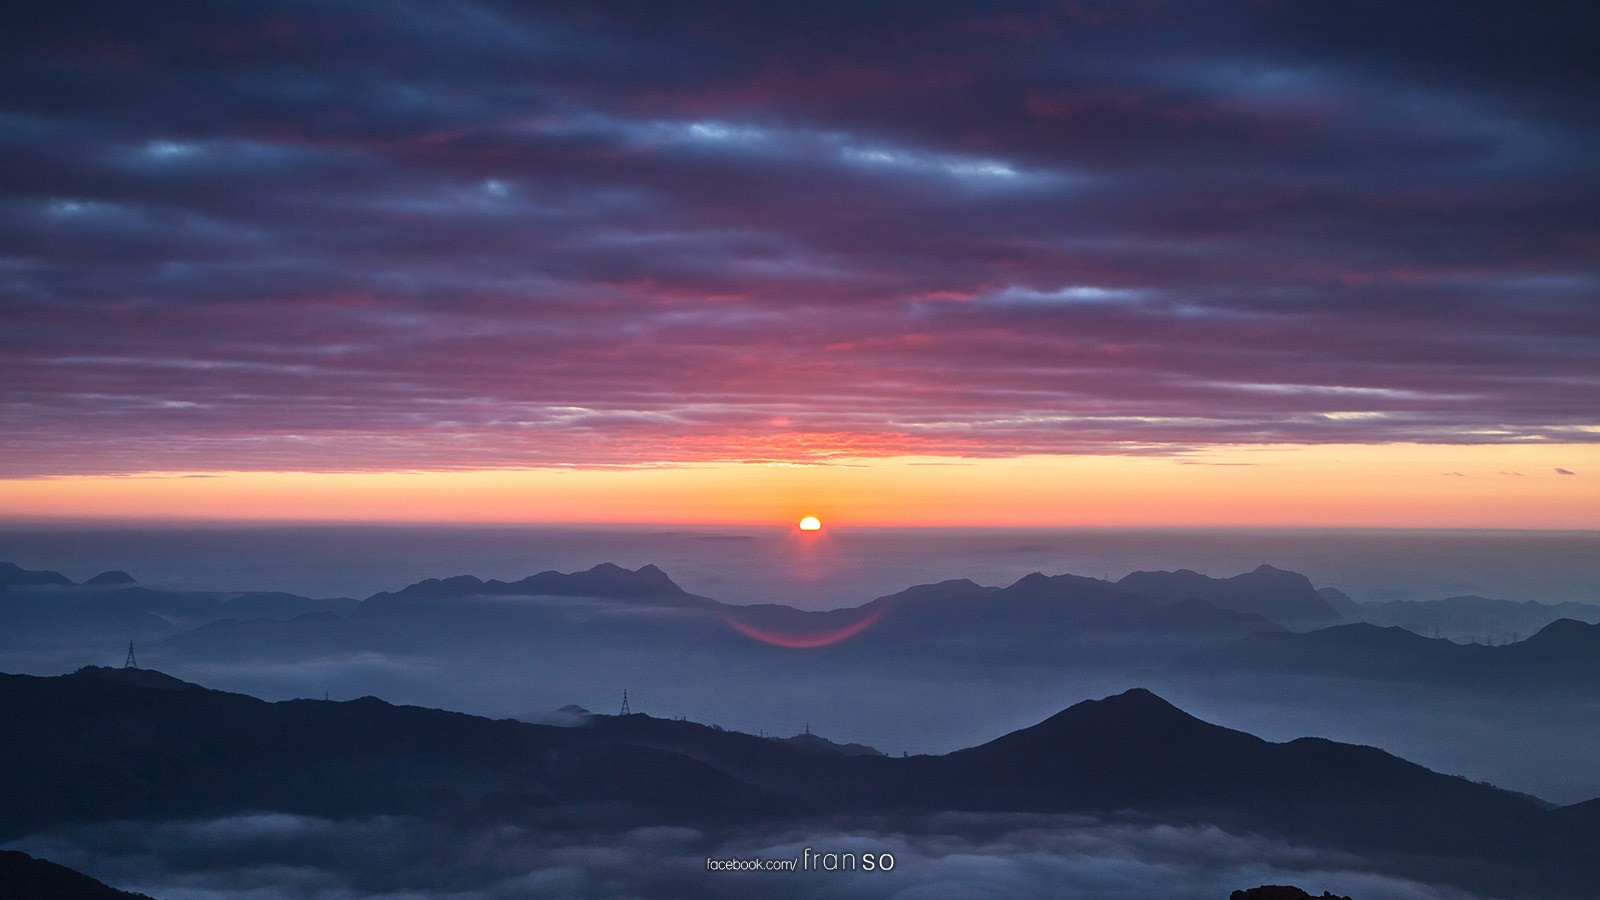 Landscape | Hong Kong | Sunrise  | The first sunrise featuring the cloud of sea and burning cloud at 2015